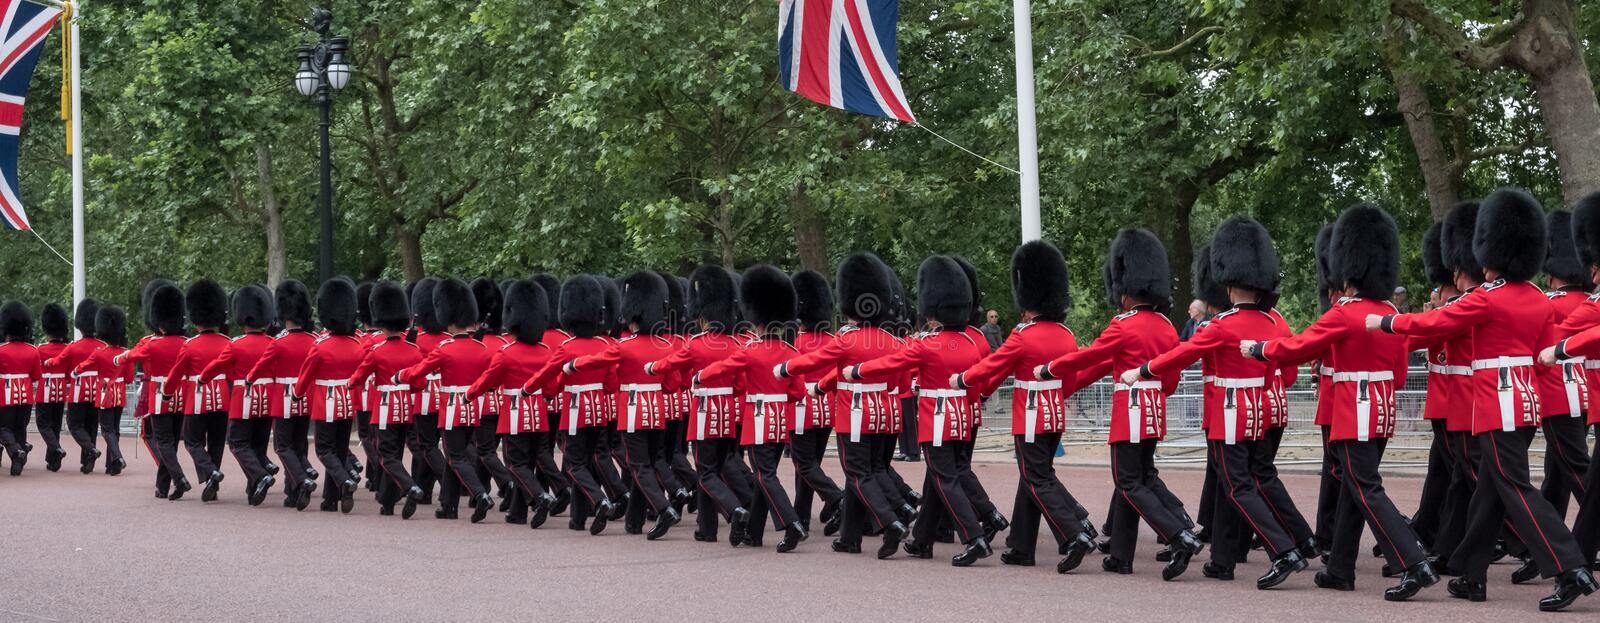 Soldiers marching down The Mall in London during the Trooping the Colour military ceremony, London. London UK. Soldiers with rifles and bayonets marching down stock image